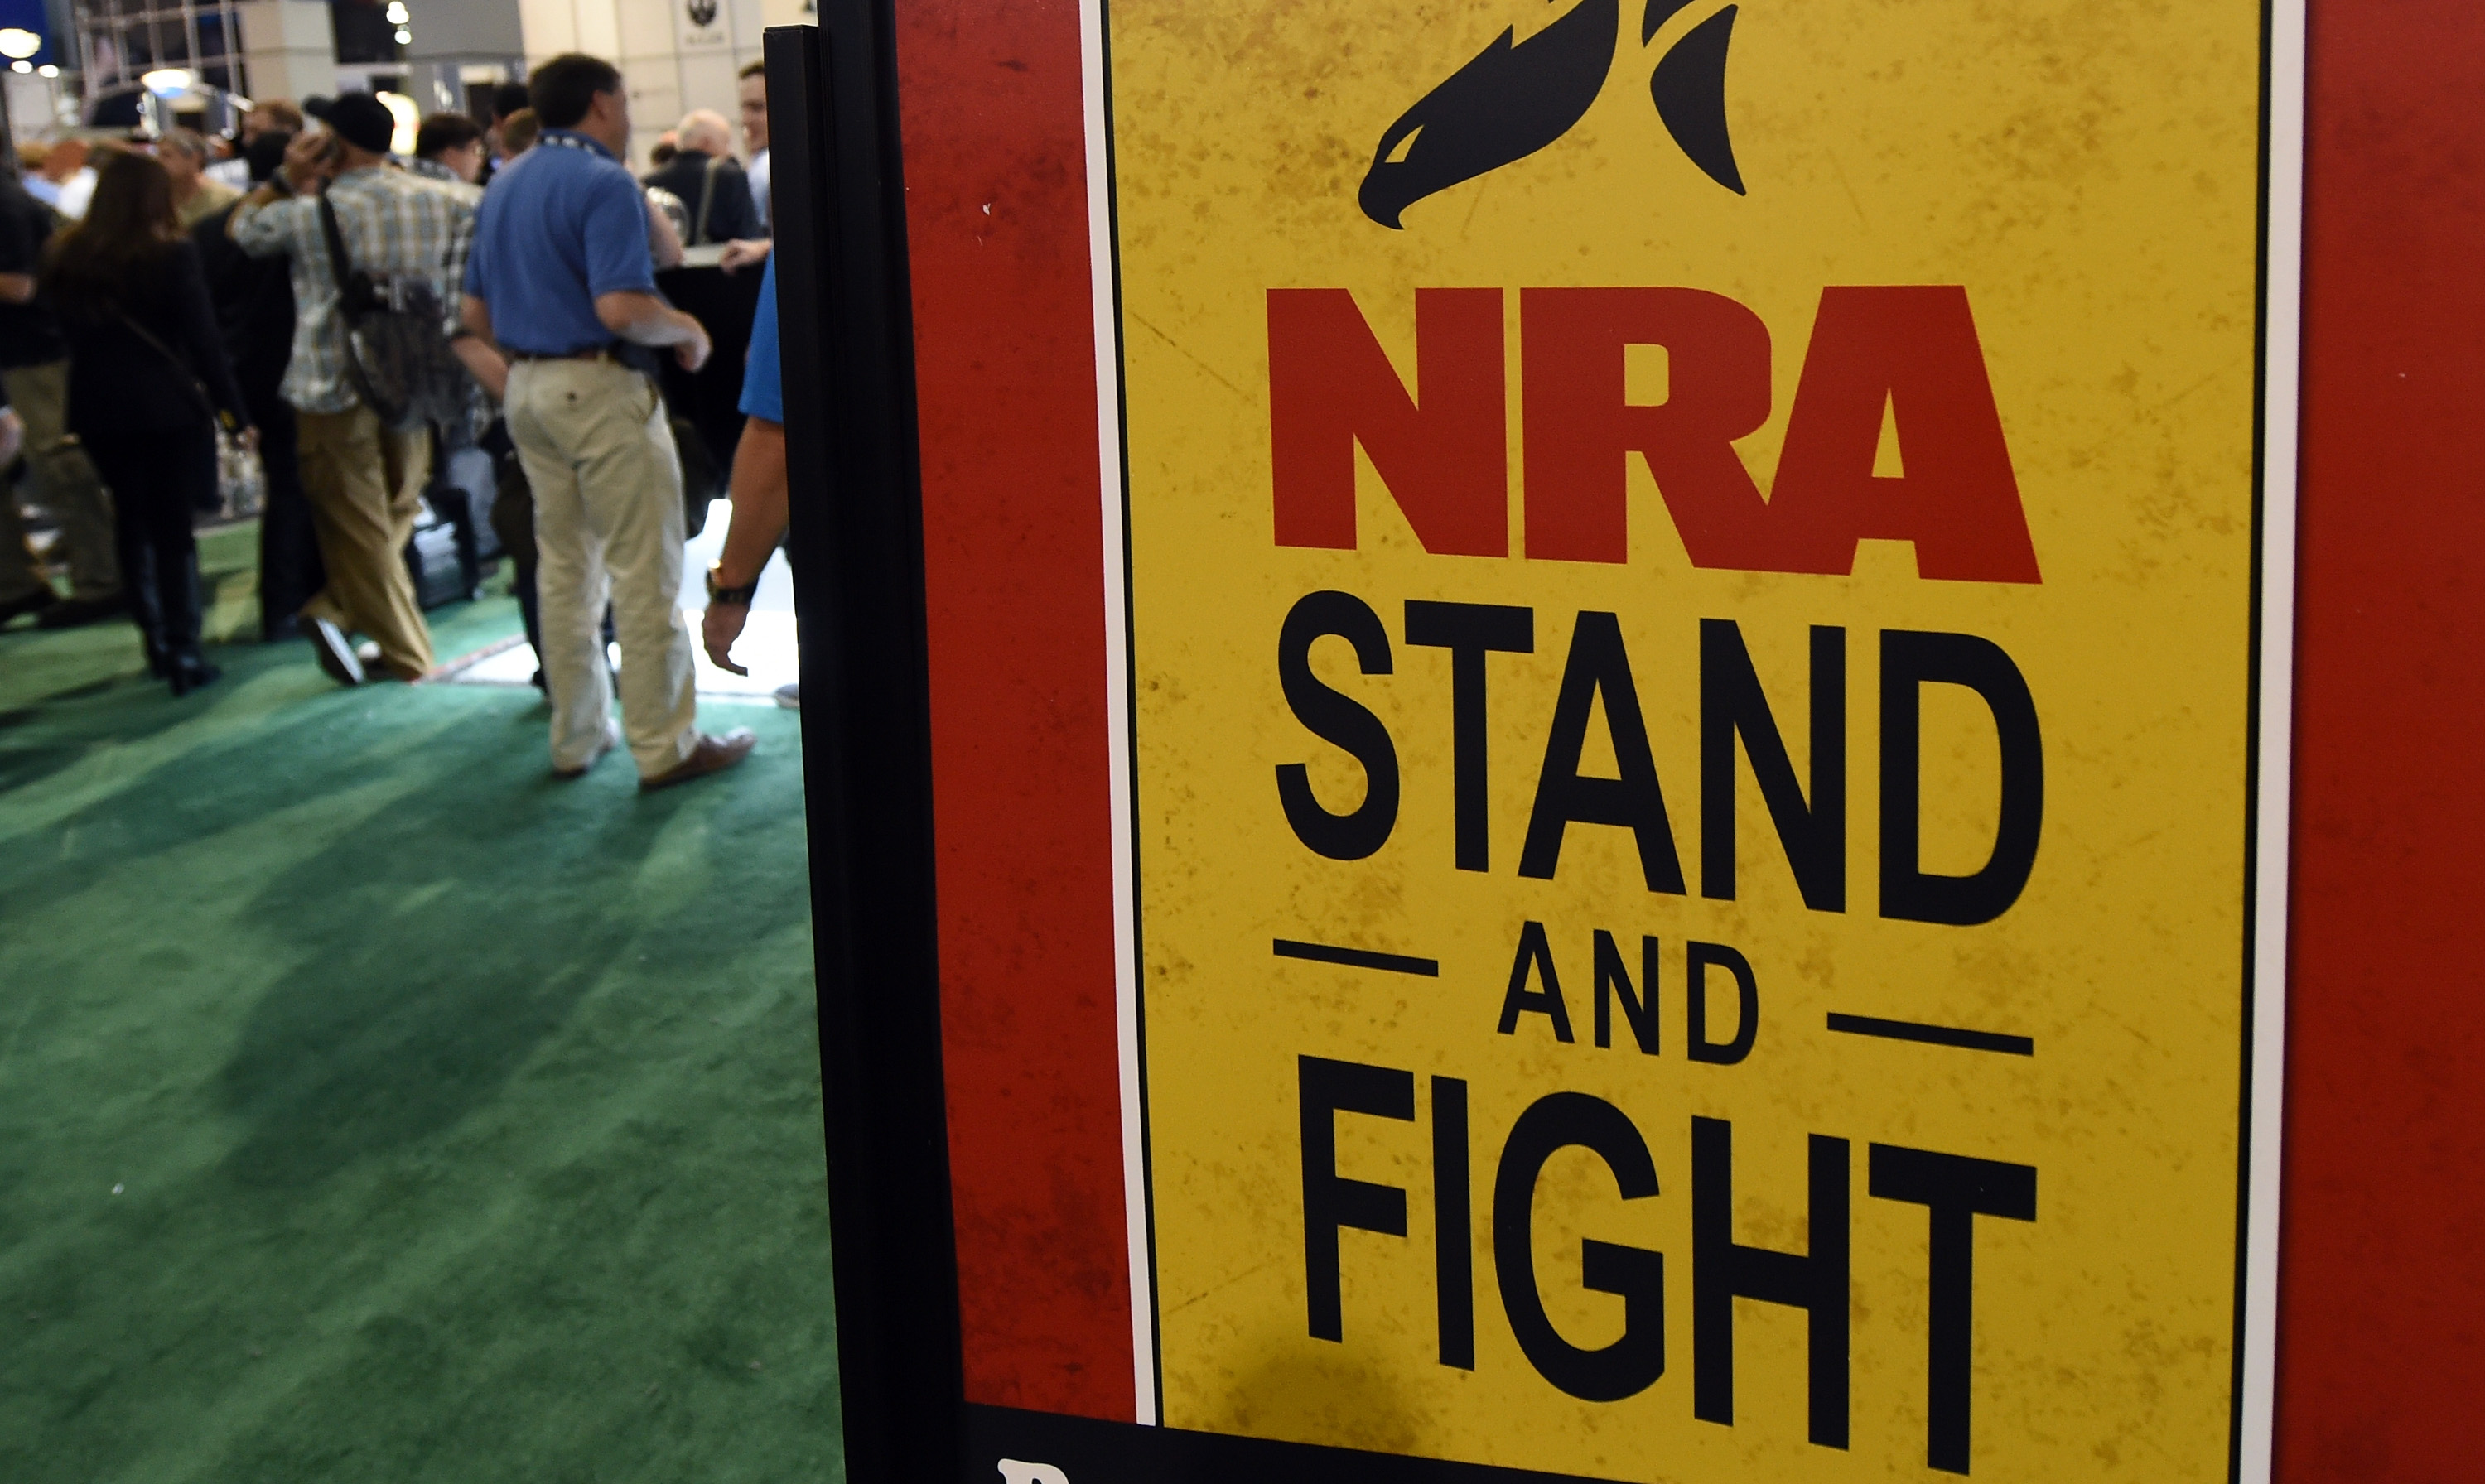 A sign for the NRA at a shooting, hunting, and outdoor convention.